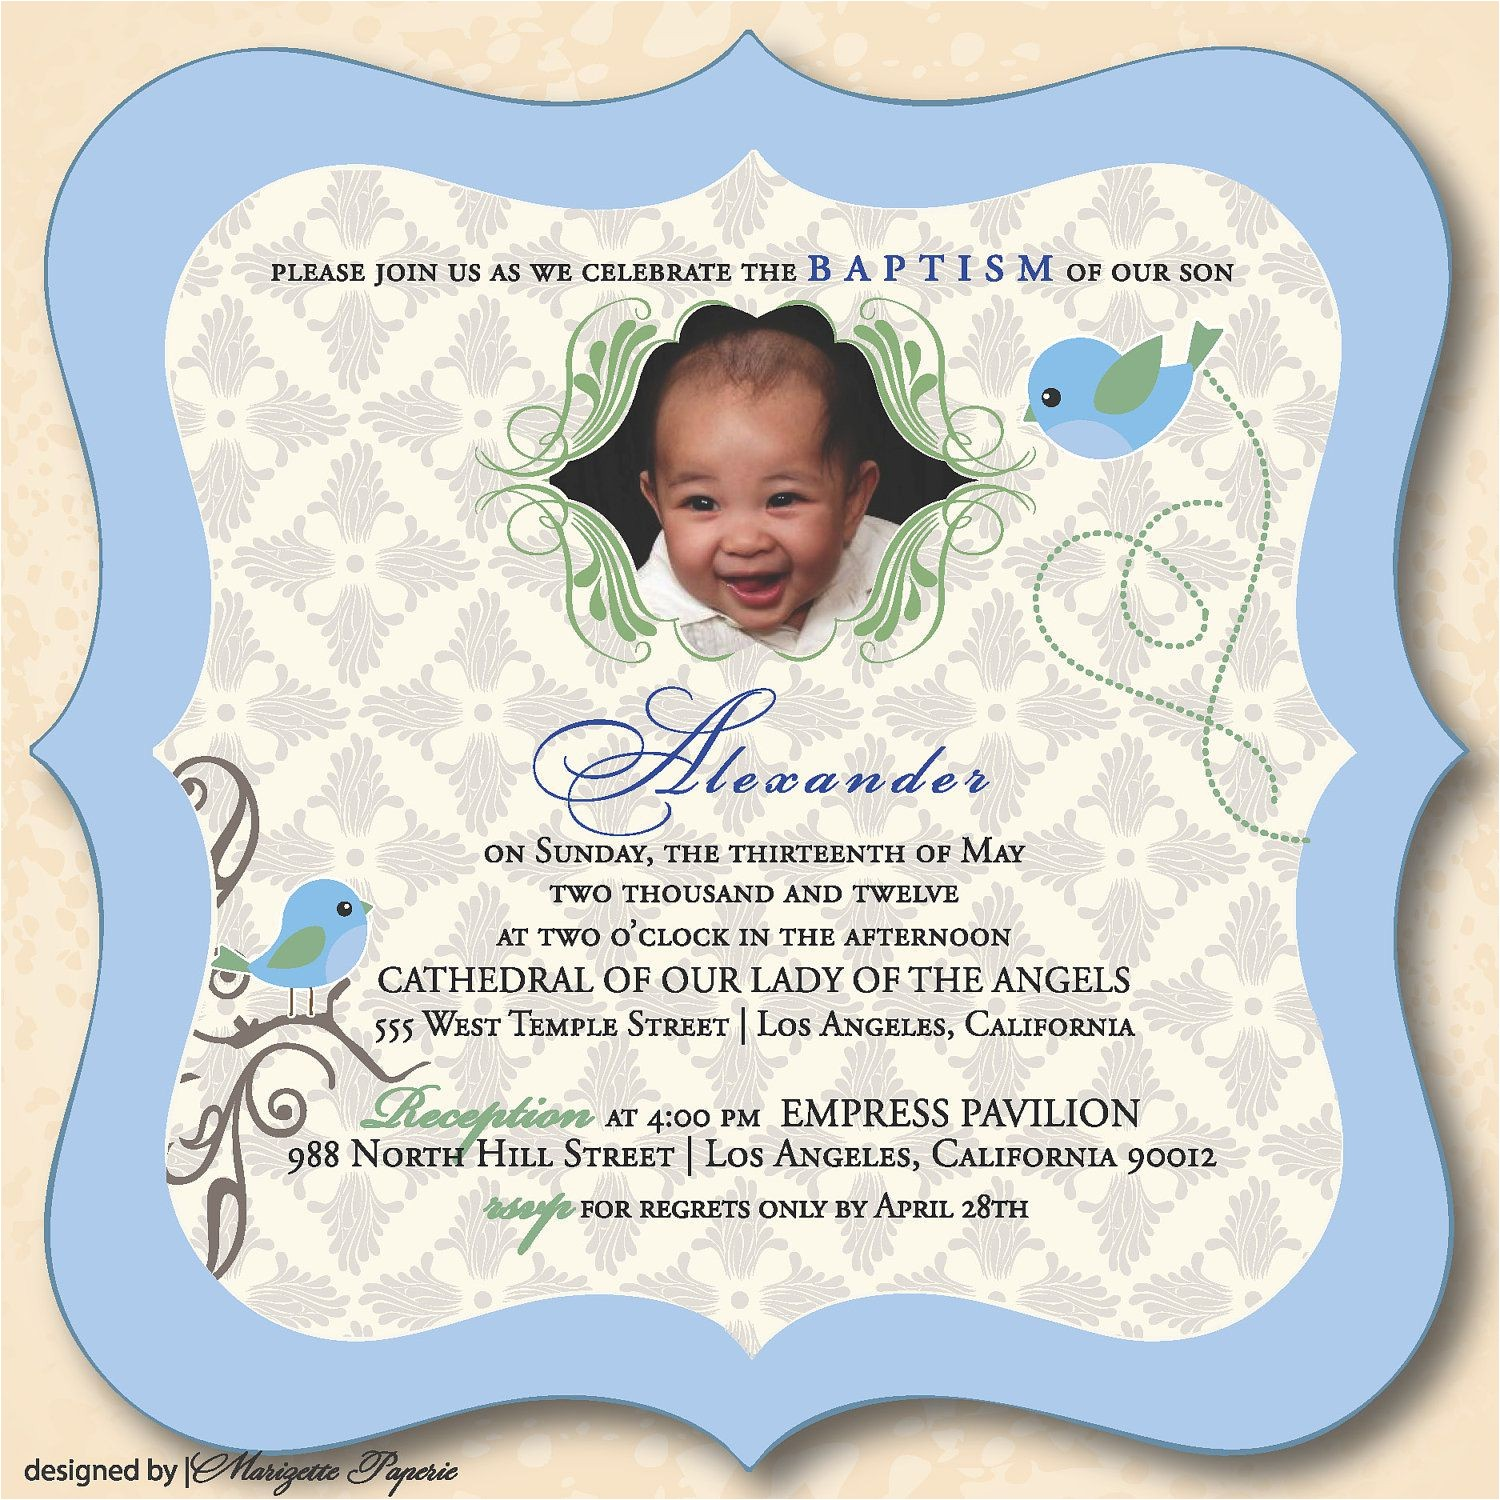 designs baby boy christening invitation designs also unique baby